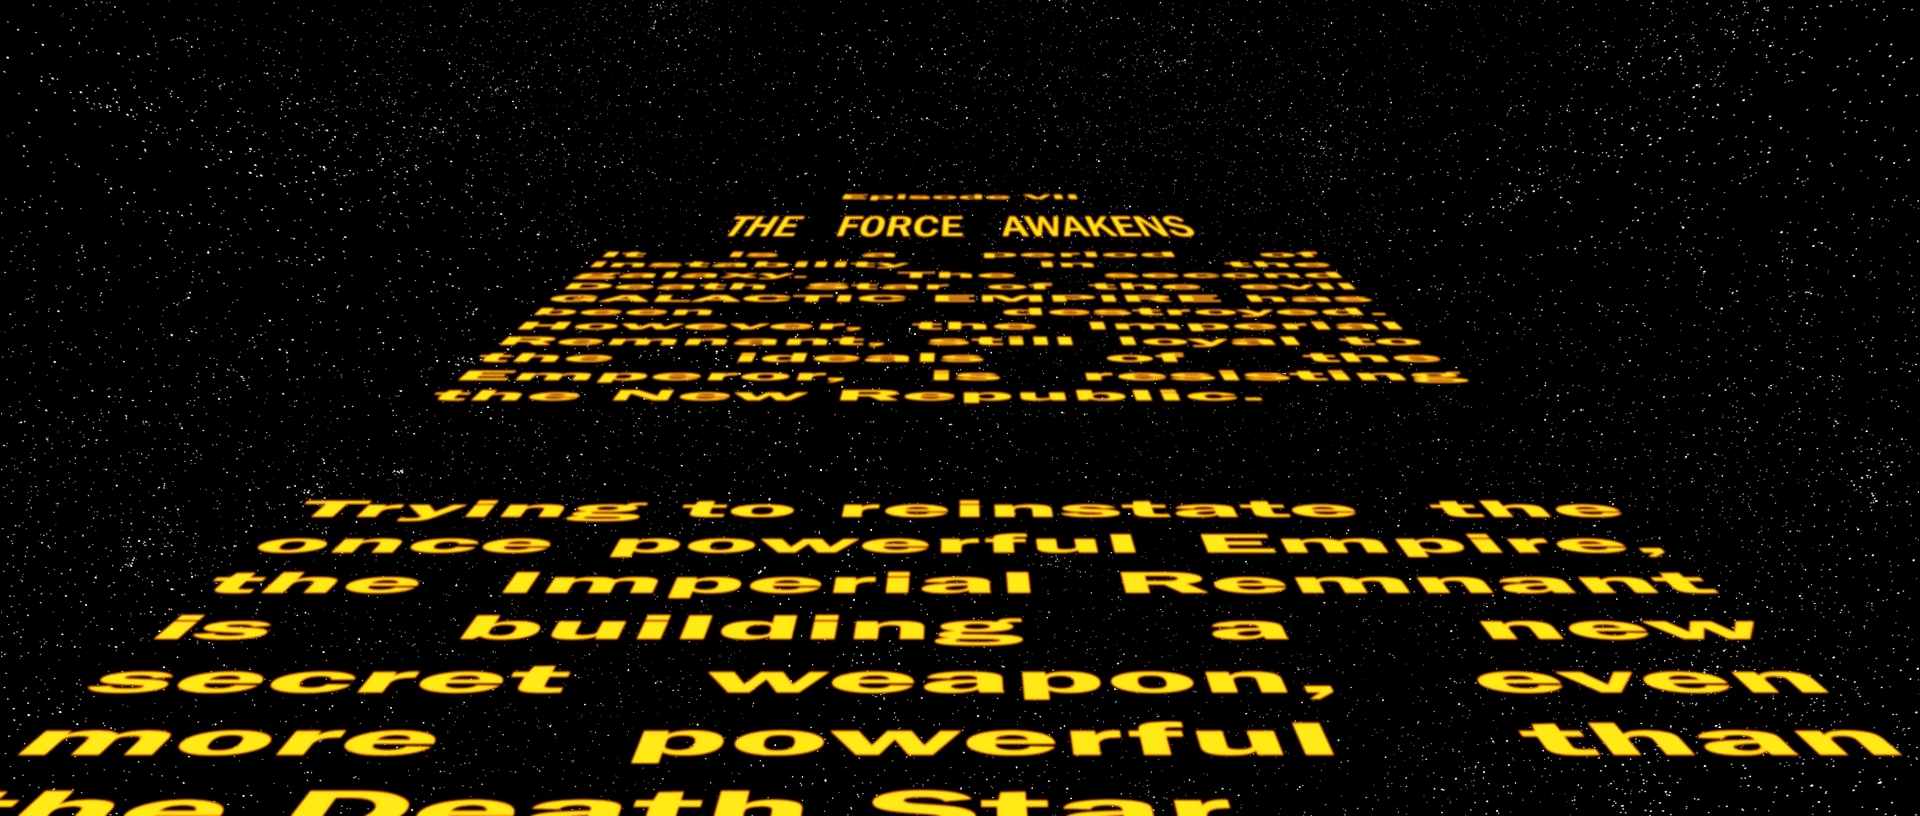 Star Wars Opening Crawl Background Posted By Ryan Cunningham